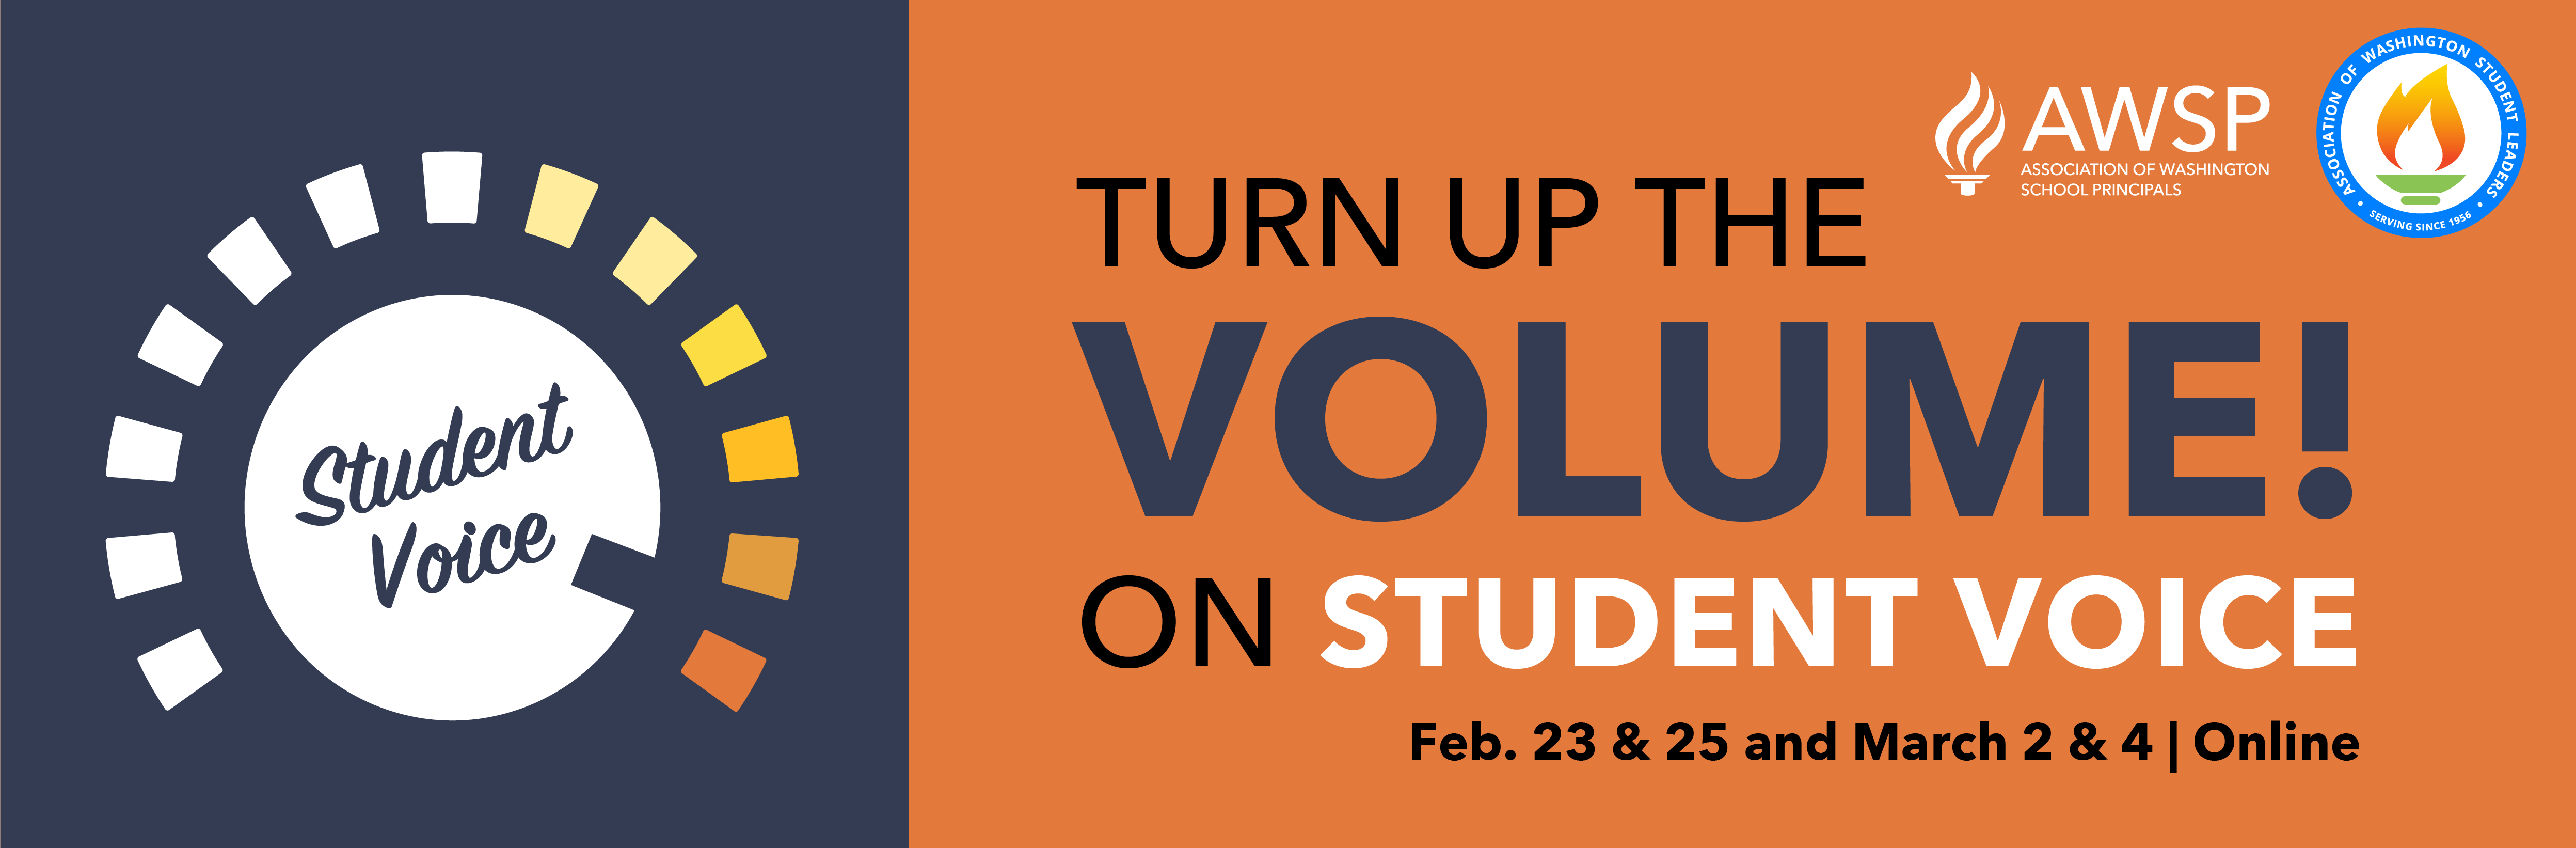 Turn_Up_the_Volume_logo_opt1a